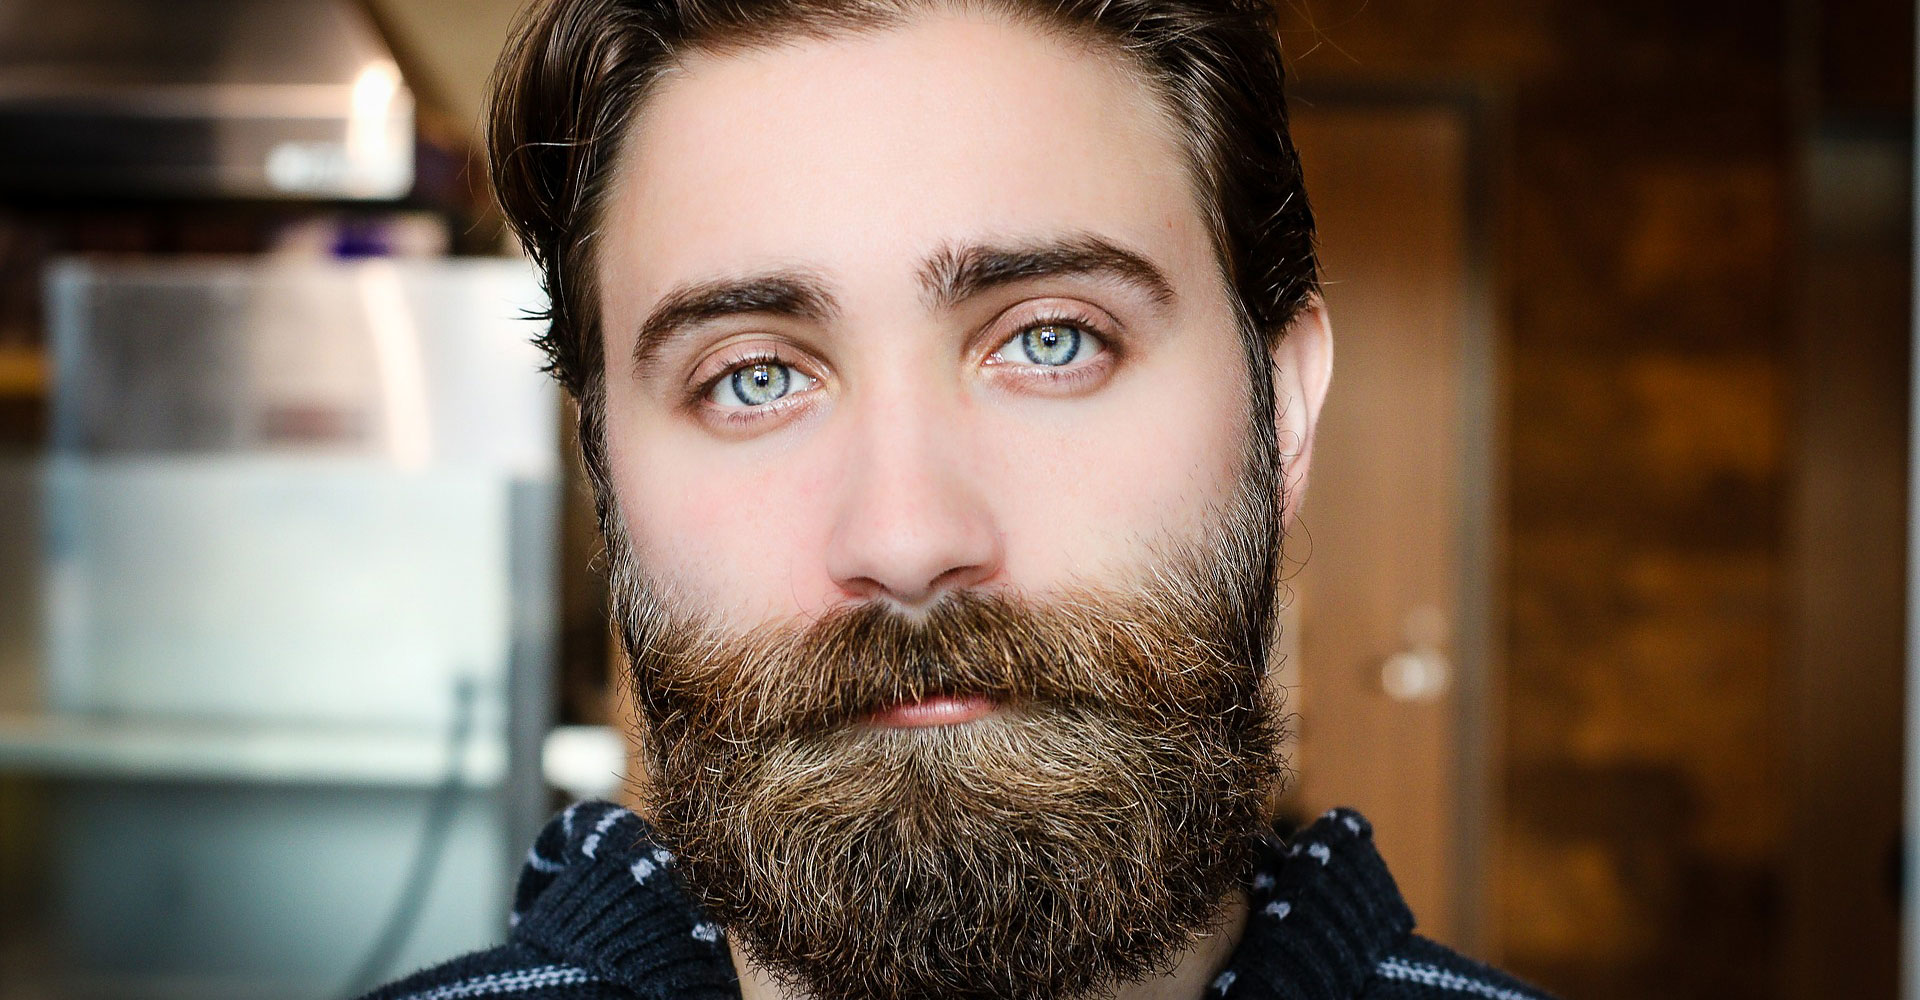 How to Grow Beard Faster – Growing a Beard Fast Just Got Easy With These Tips and Tricks